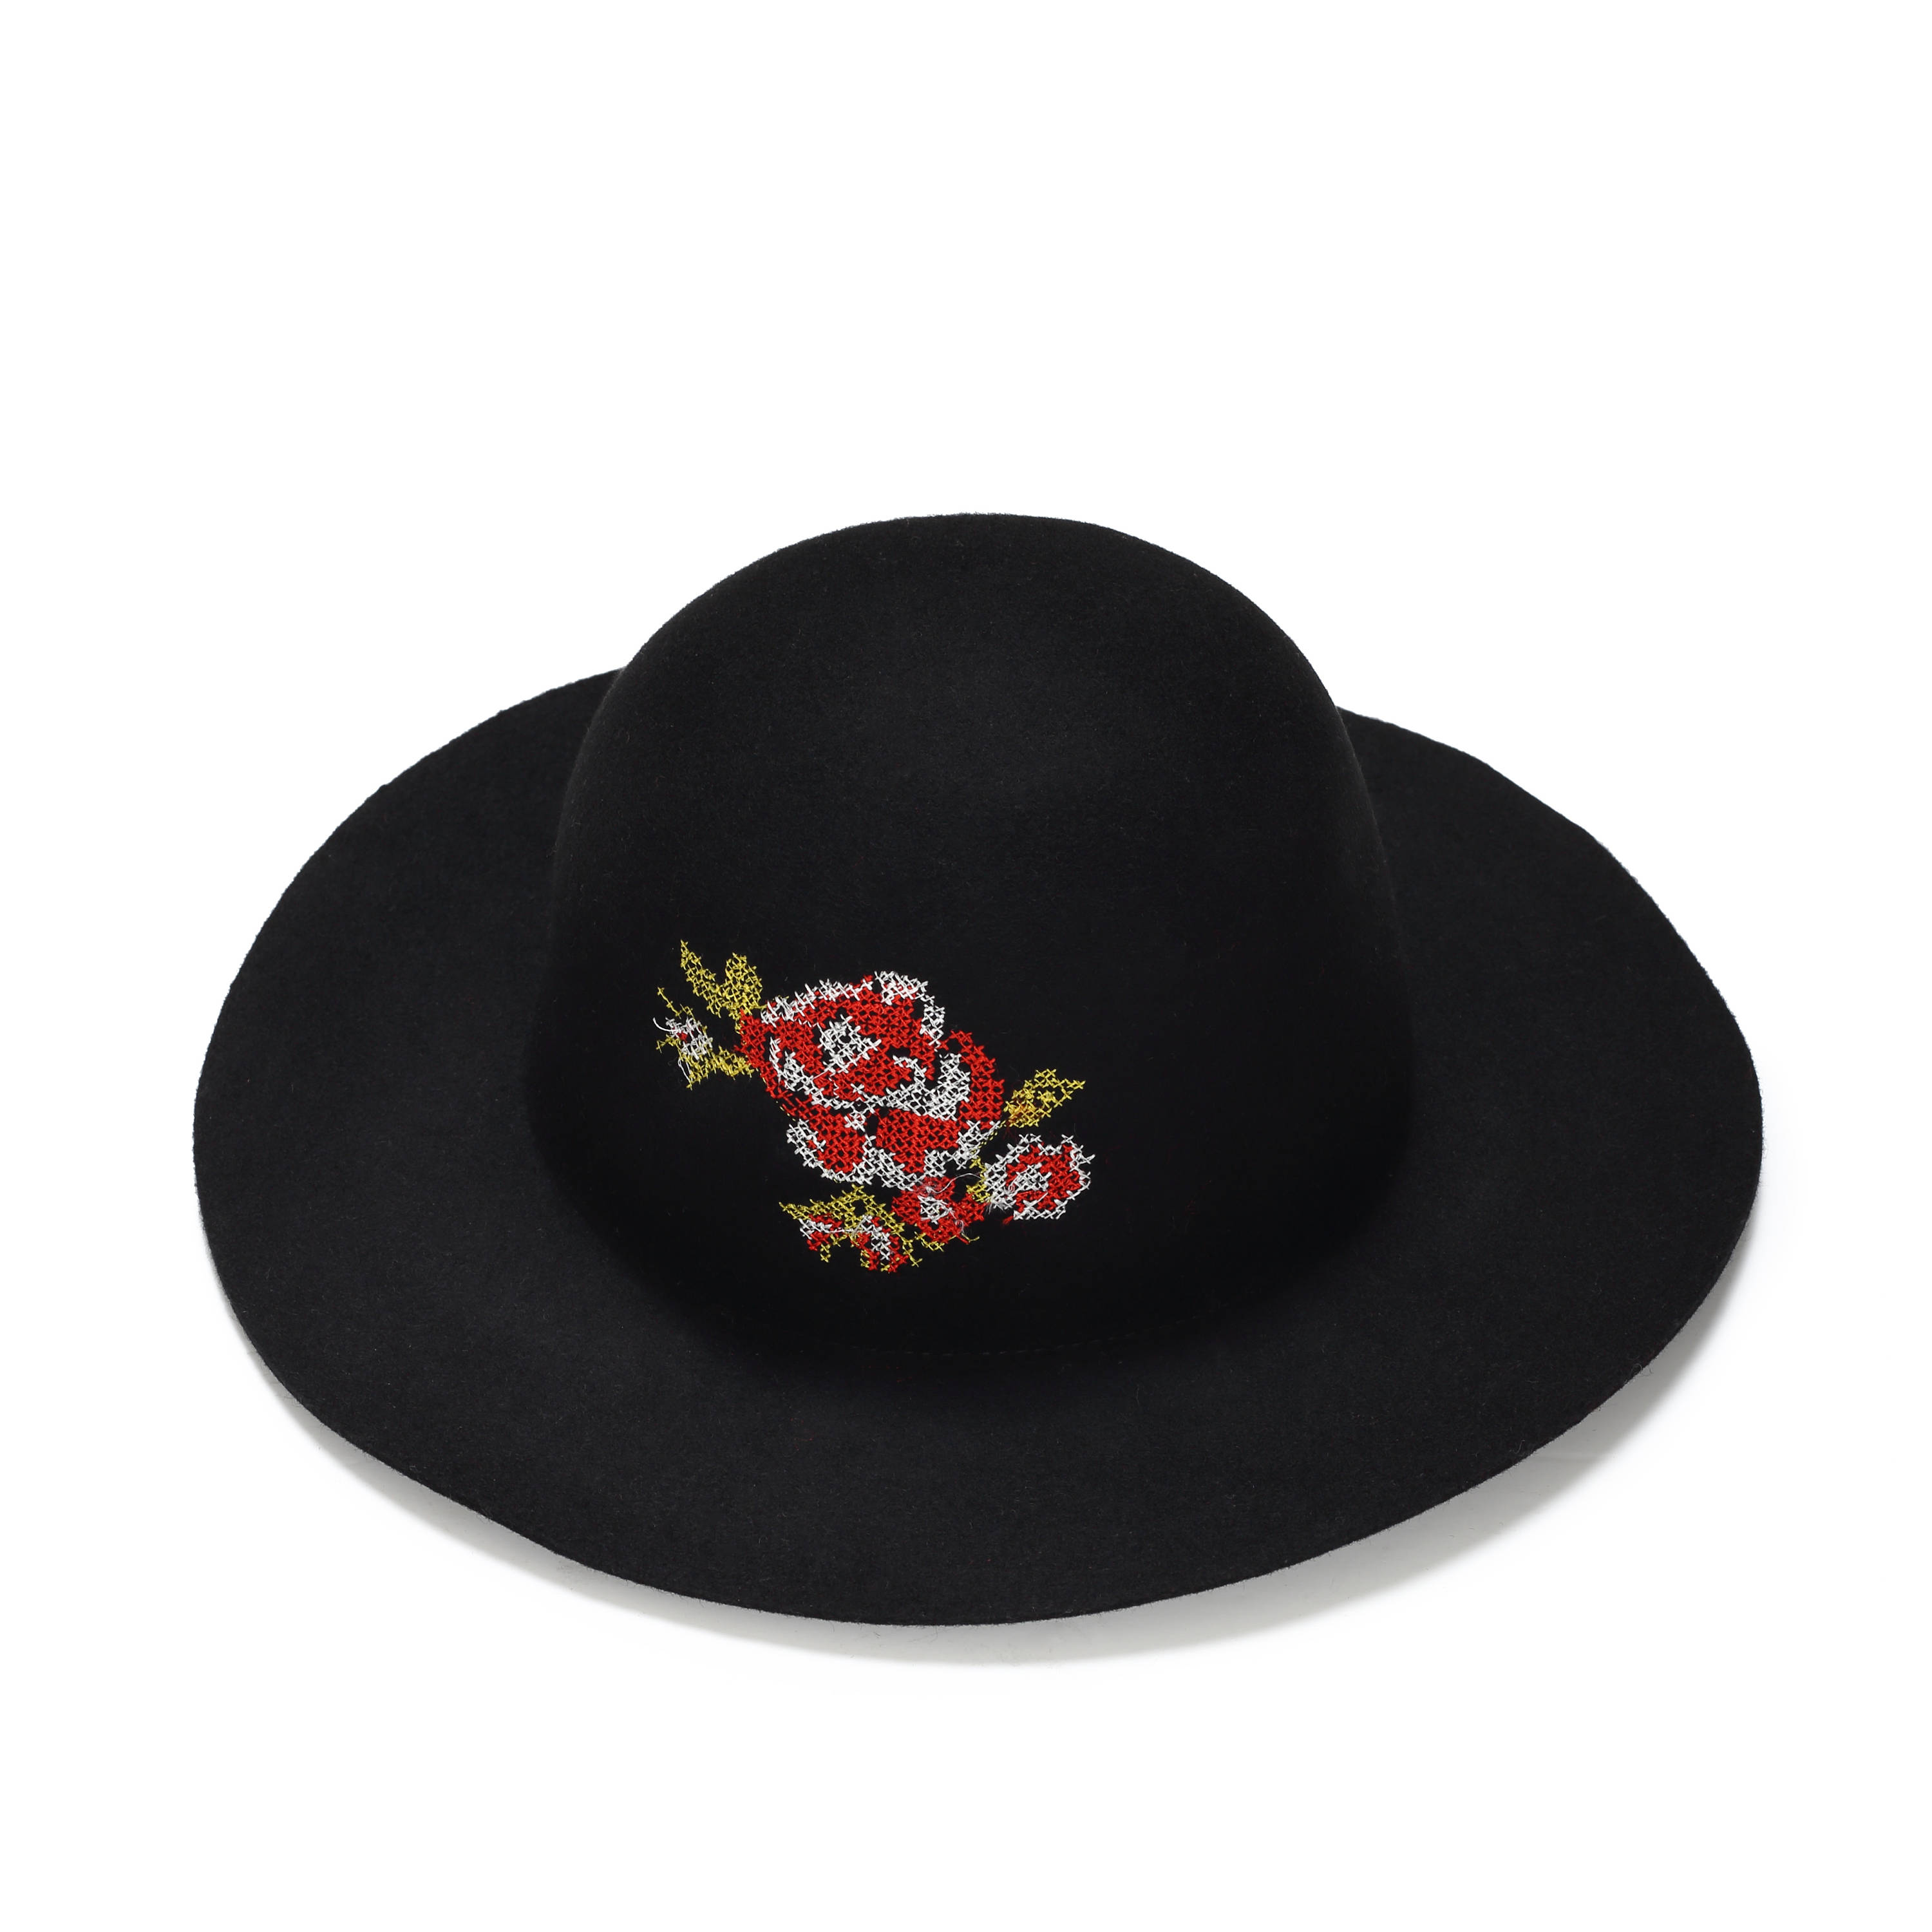 Black felt floppy hat with flower embroidery Embroidered felt  56273a429516